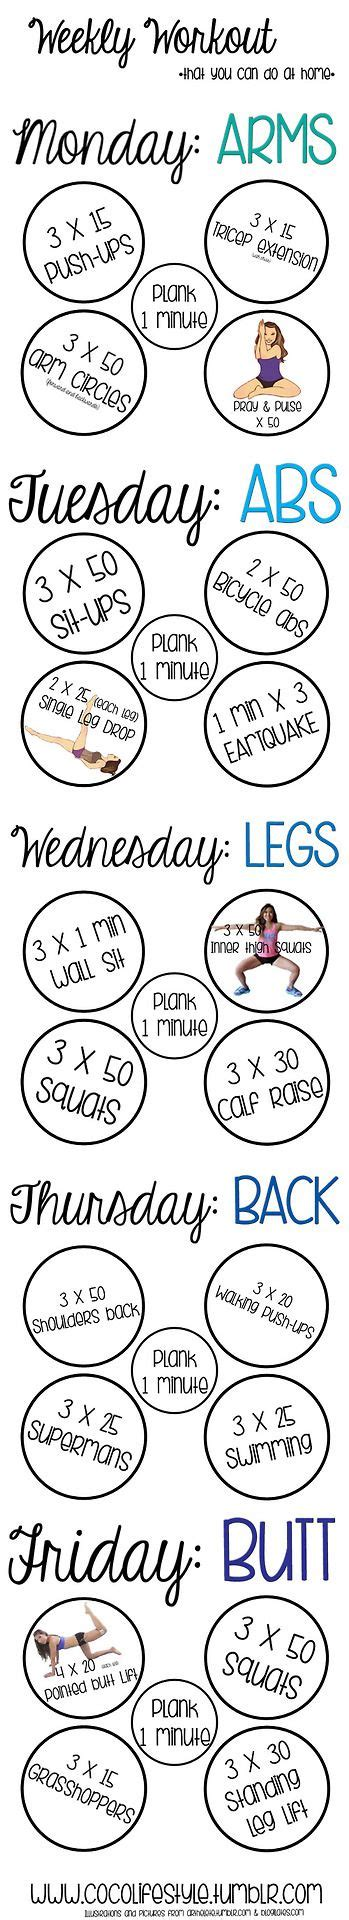 weekly workout you can do at home fitness